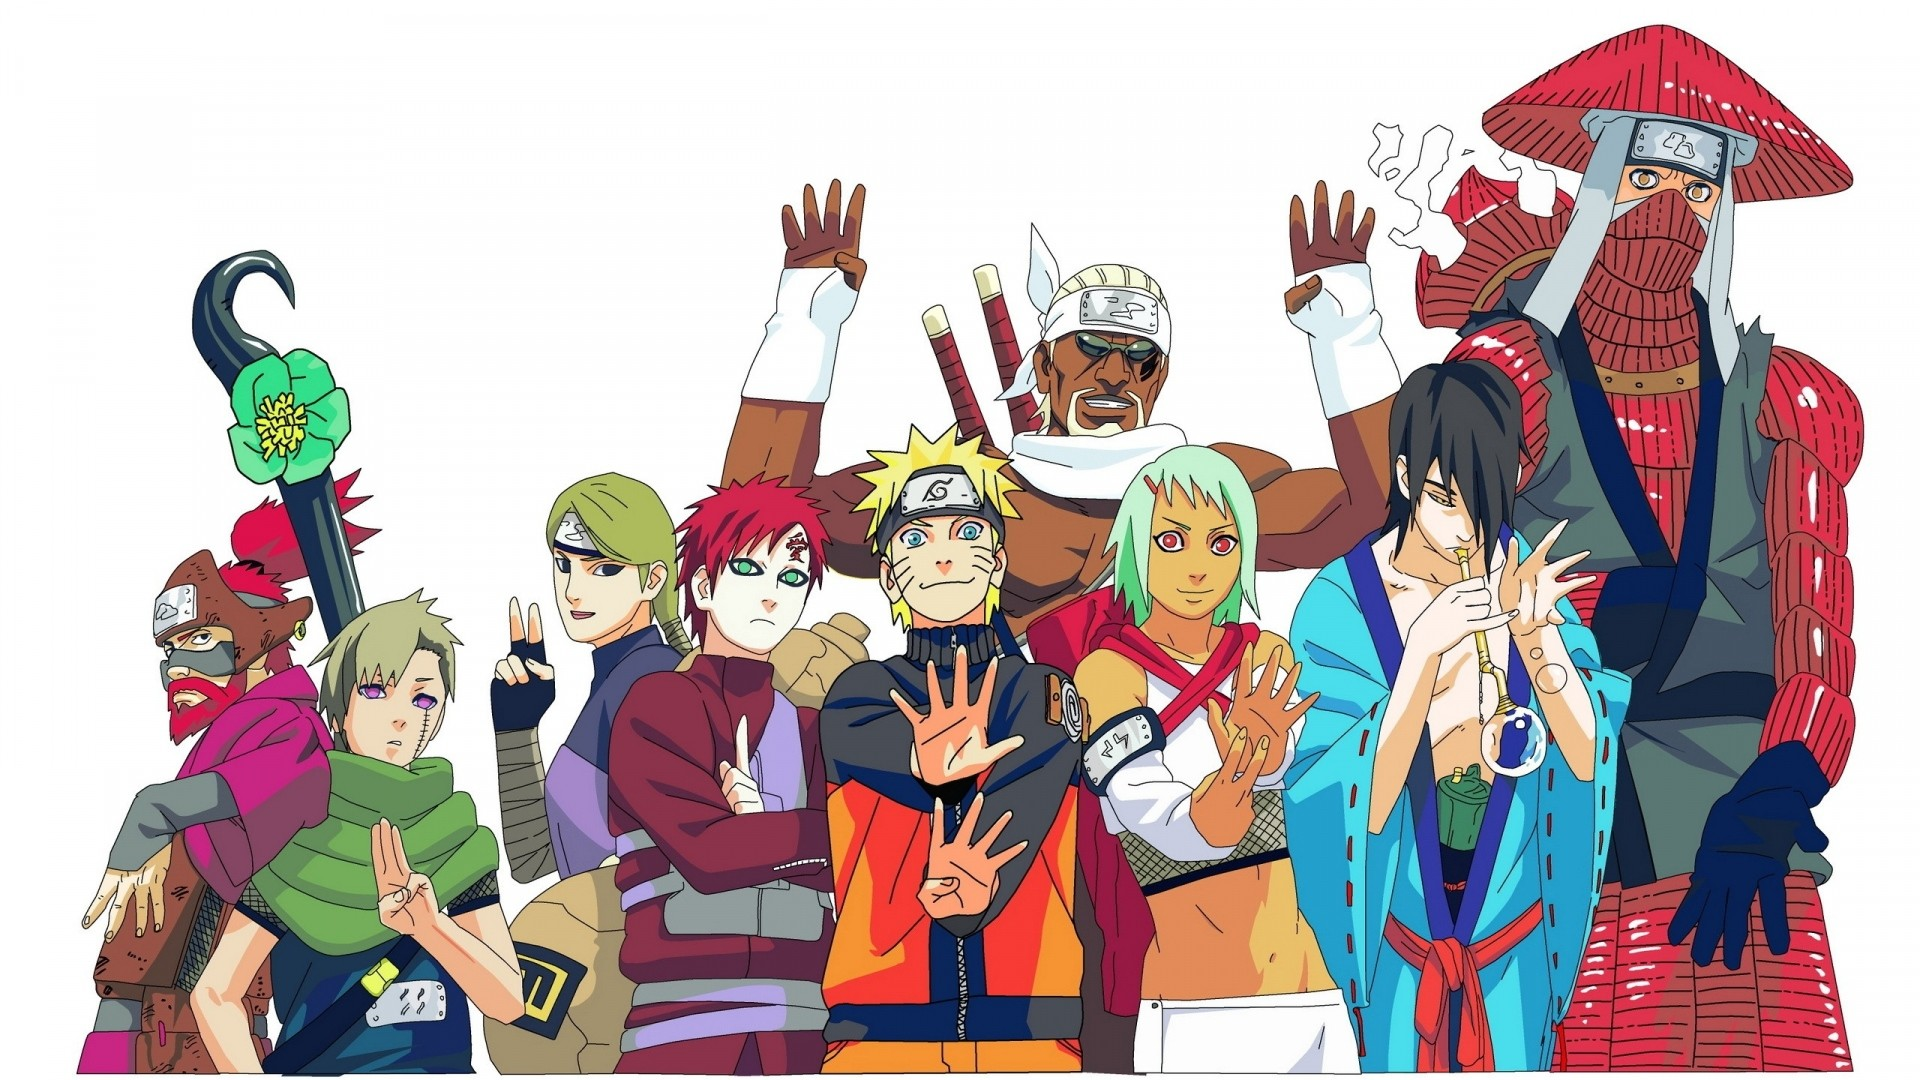 Free Naruto Vs Sasuke Wallpaper High Quality Resolution at ... |Naruto High Quality Wallpaper